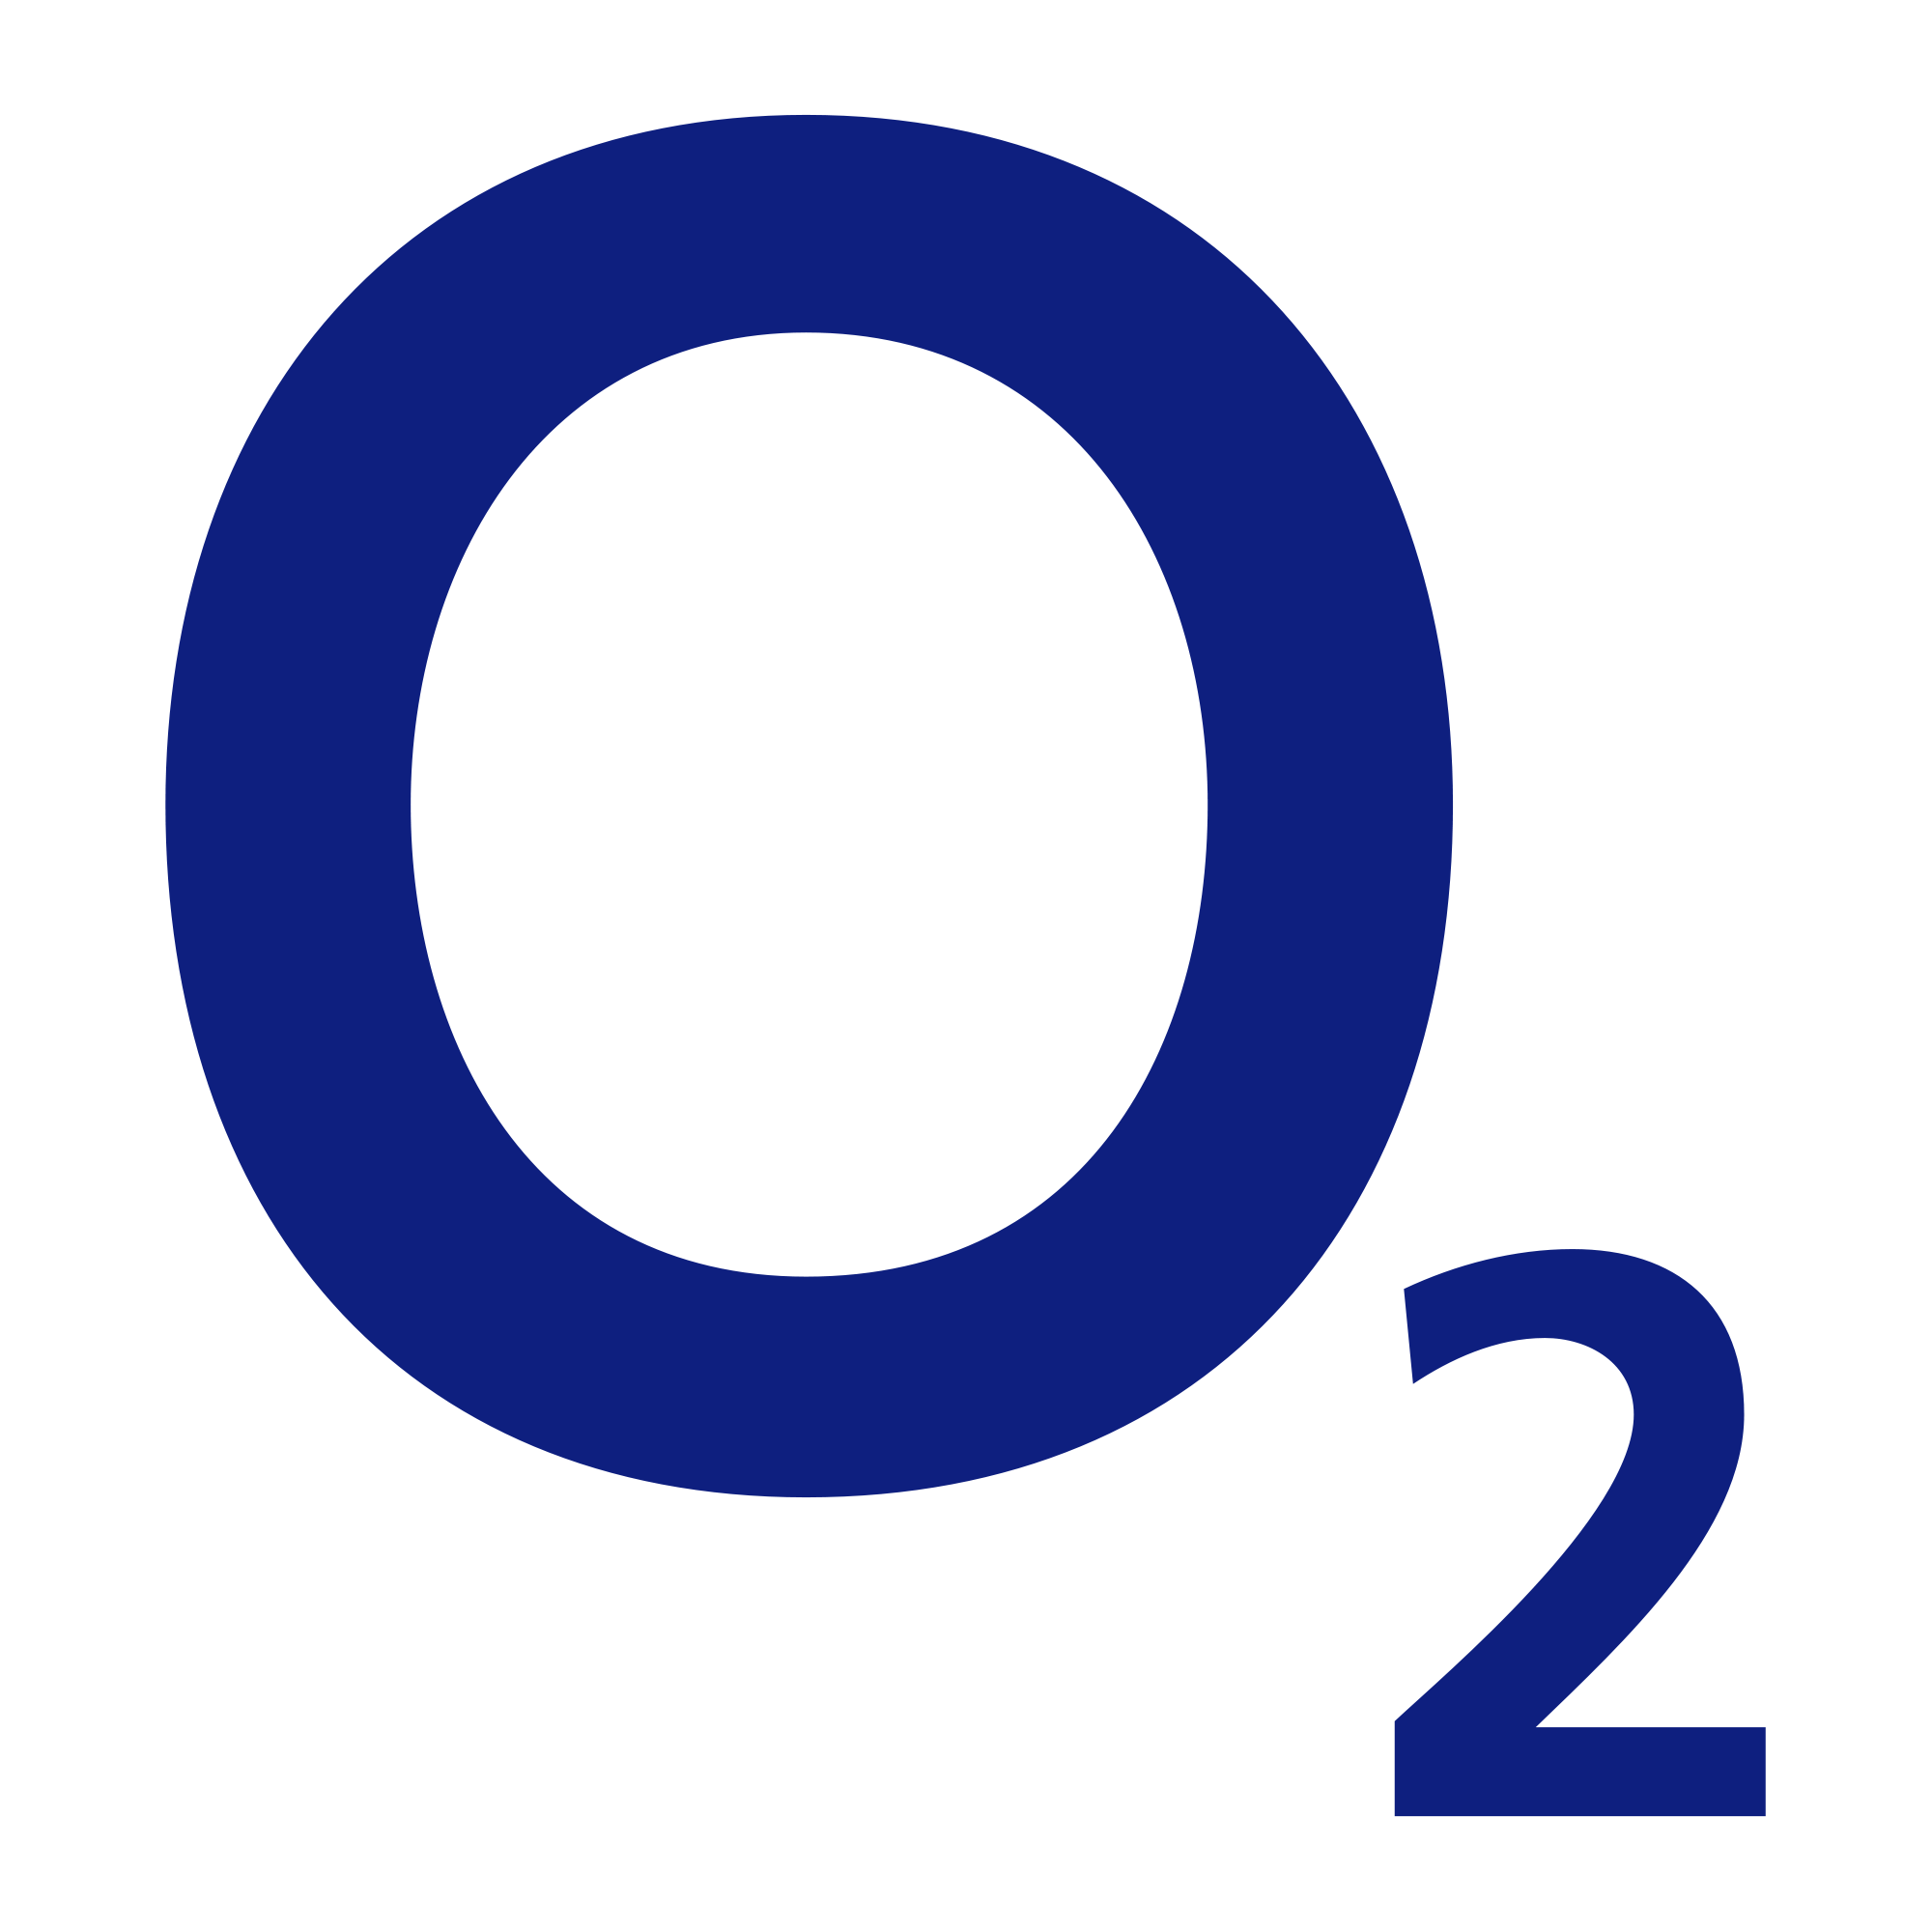 O2 Logo | Marketing in telecommunication